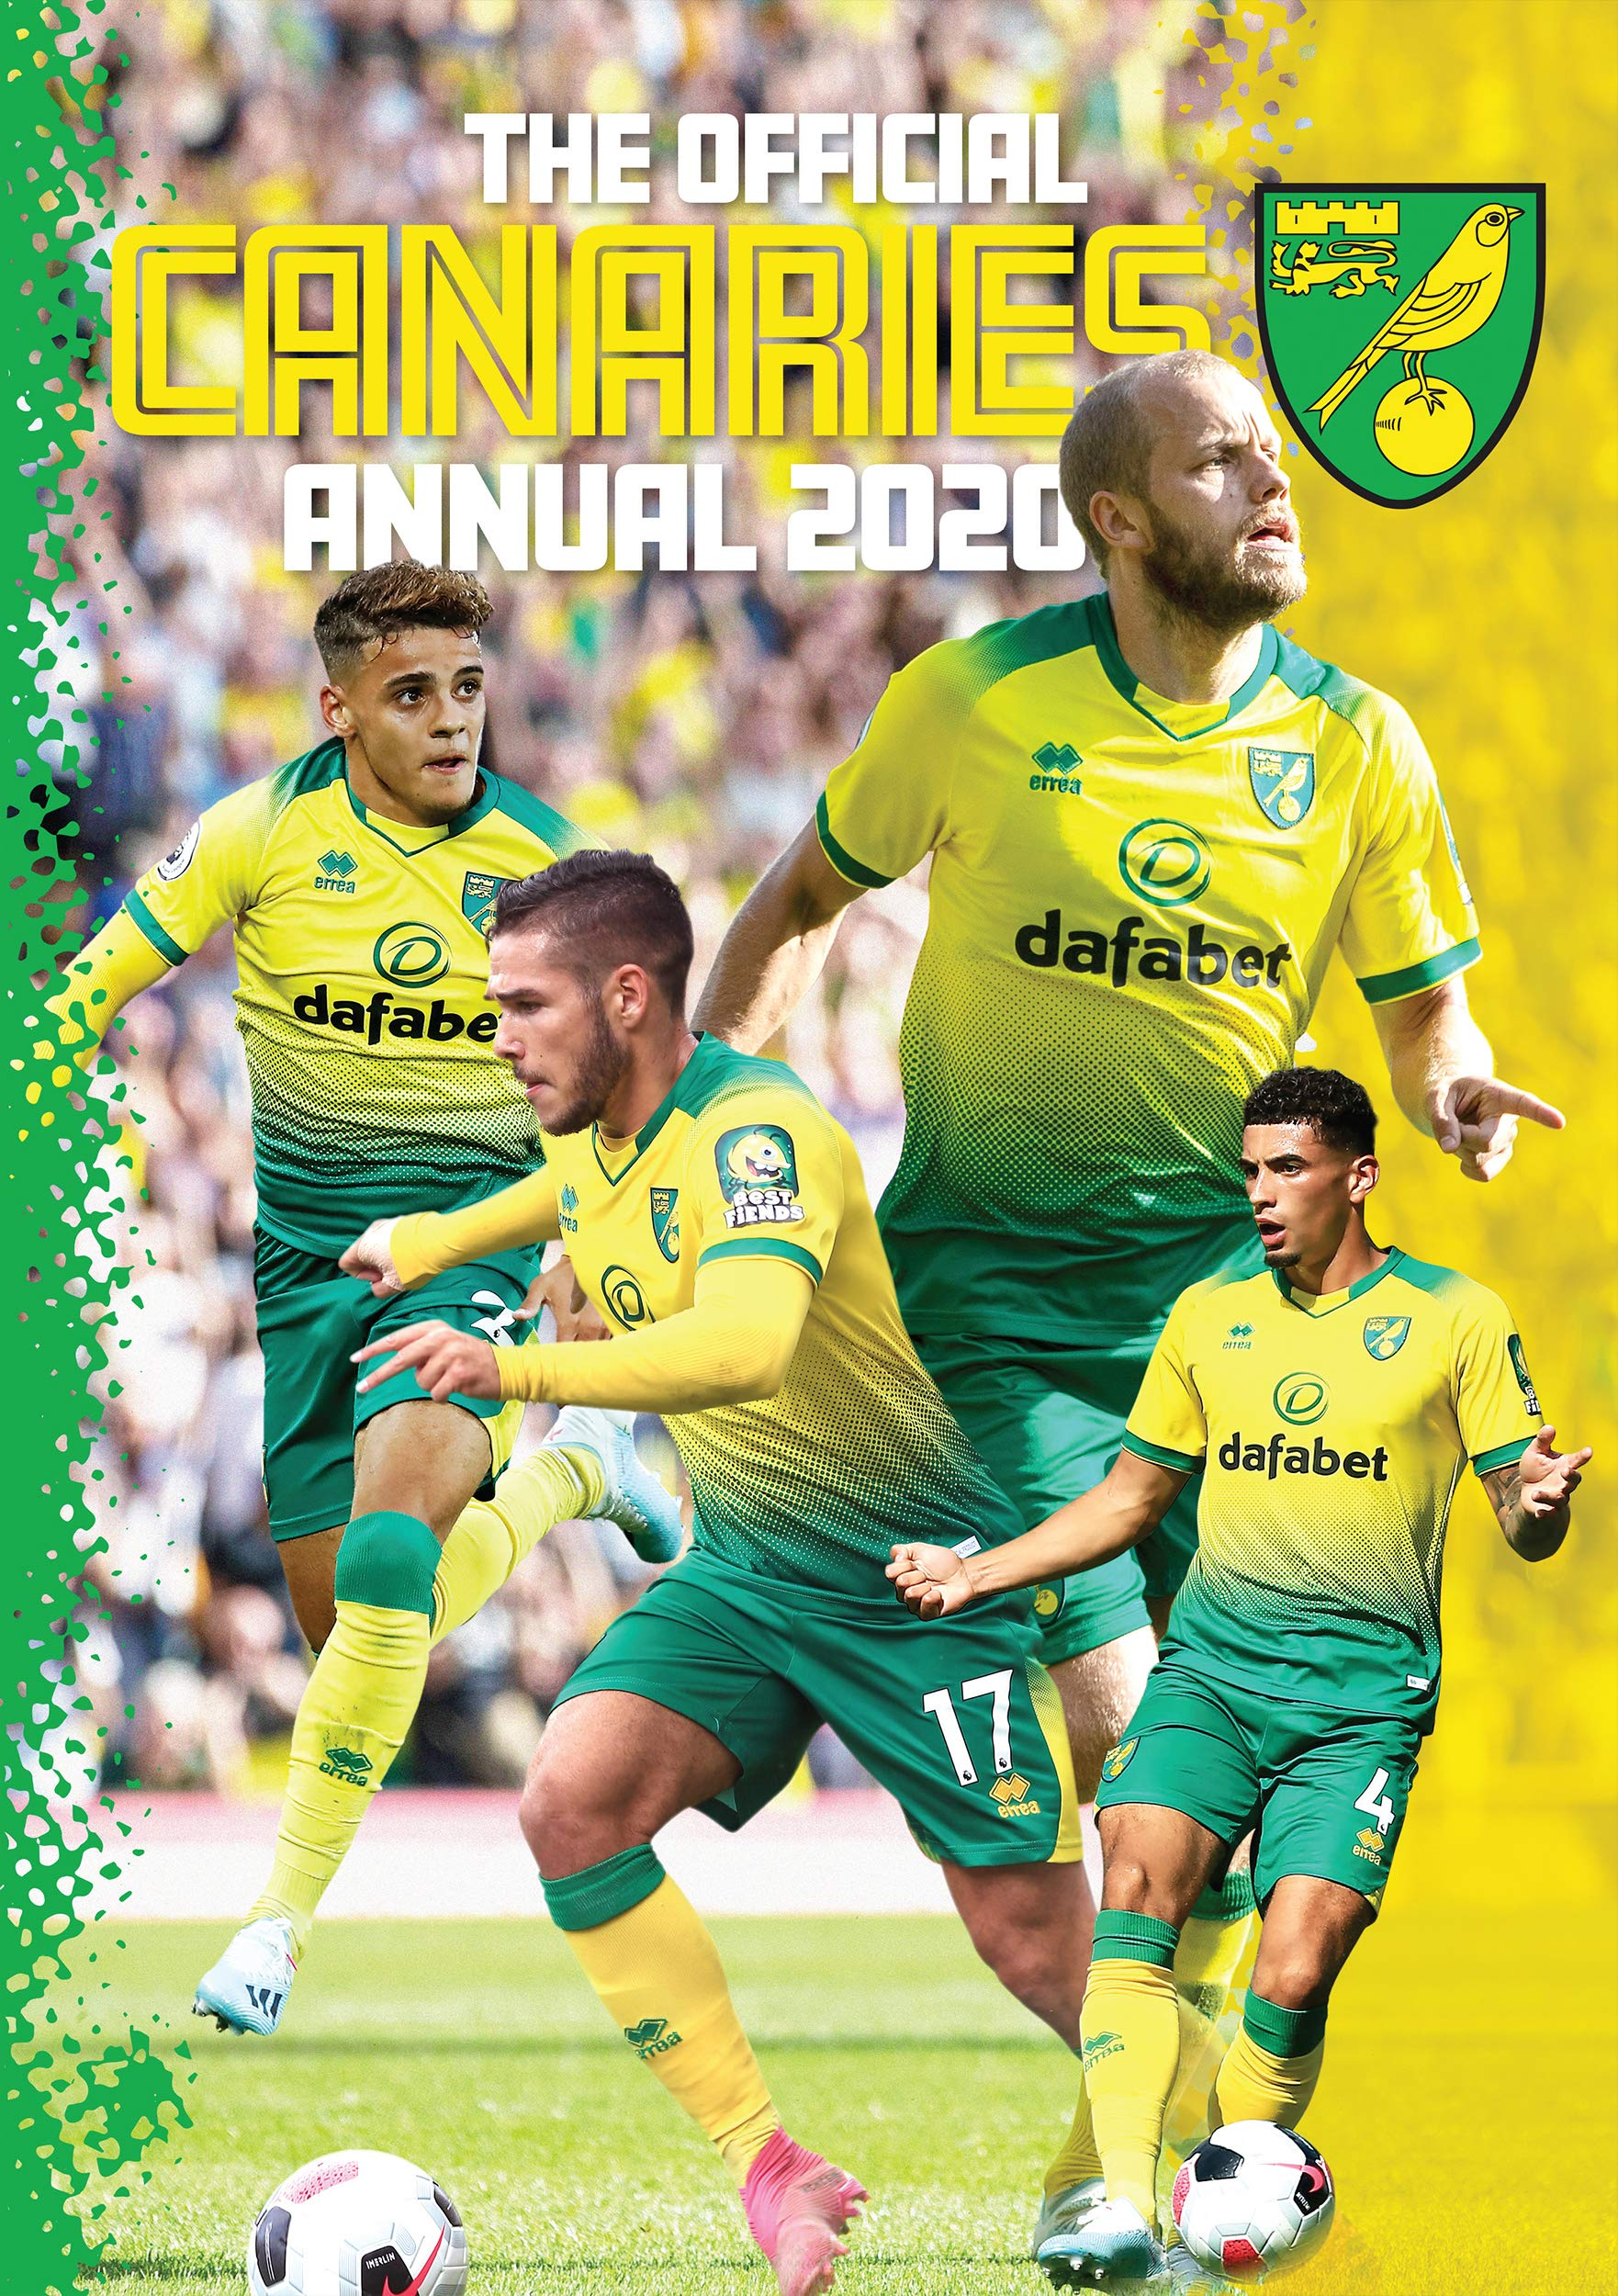 The Official Norwich City Fc Annual 2020 Amazon Co Uk Twocan 9781911502760 Books